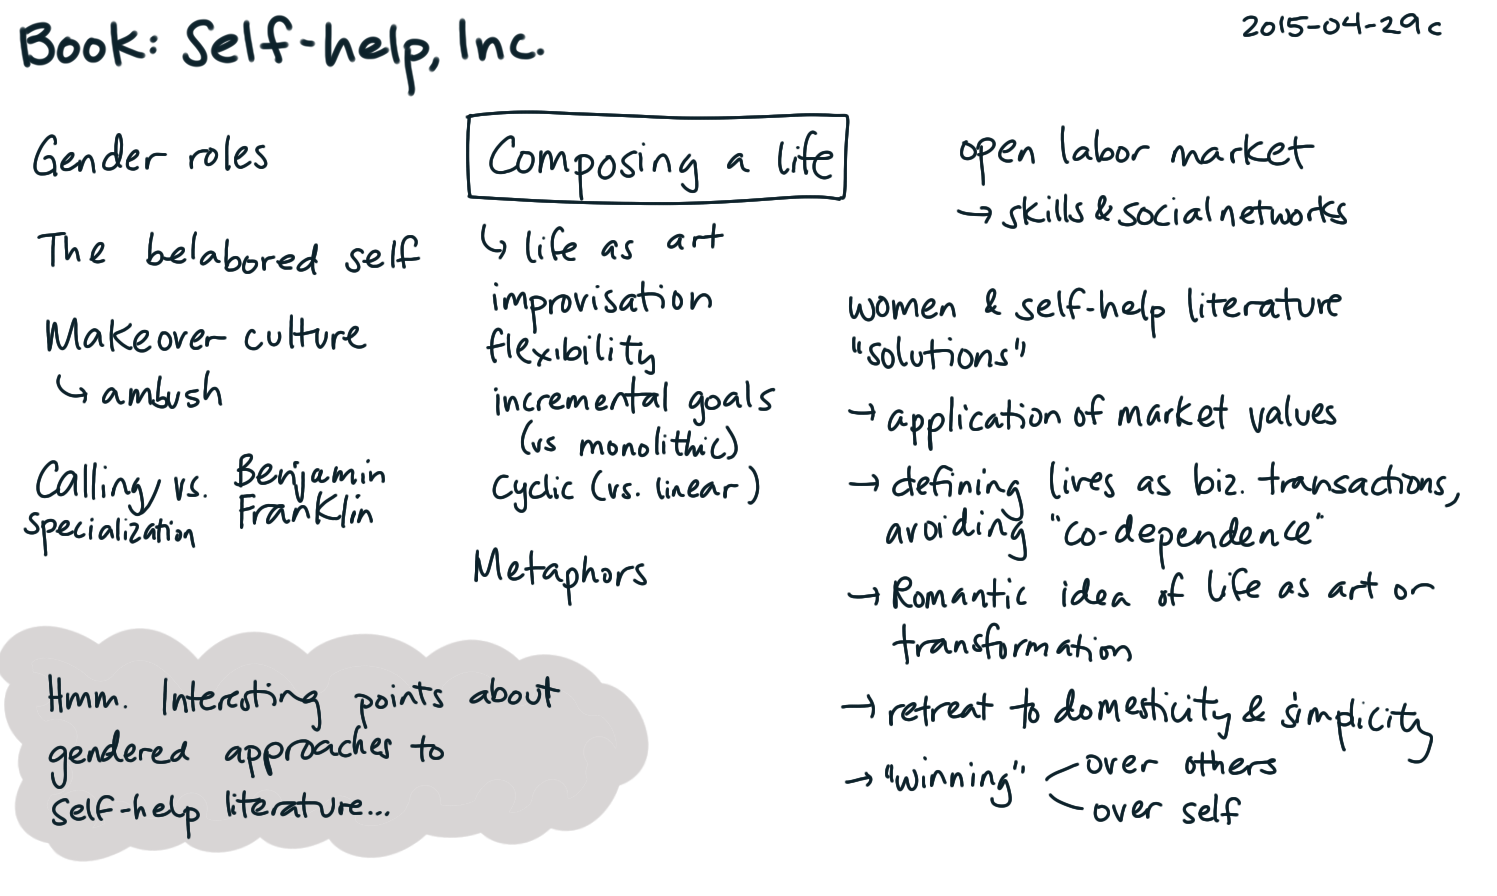 2015-04-29c Raw book notes - Self-help, Inc -- index card #book.png